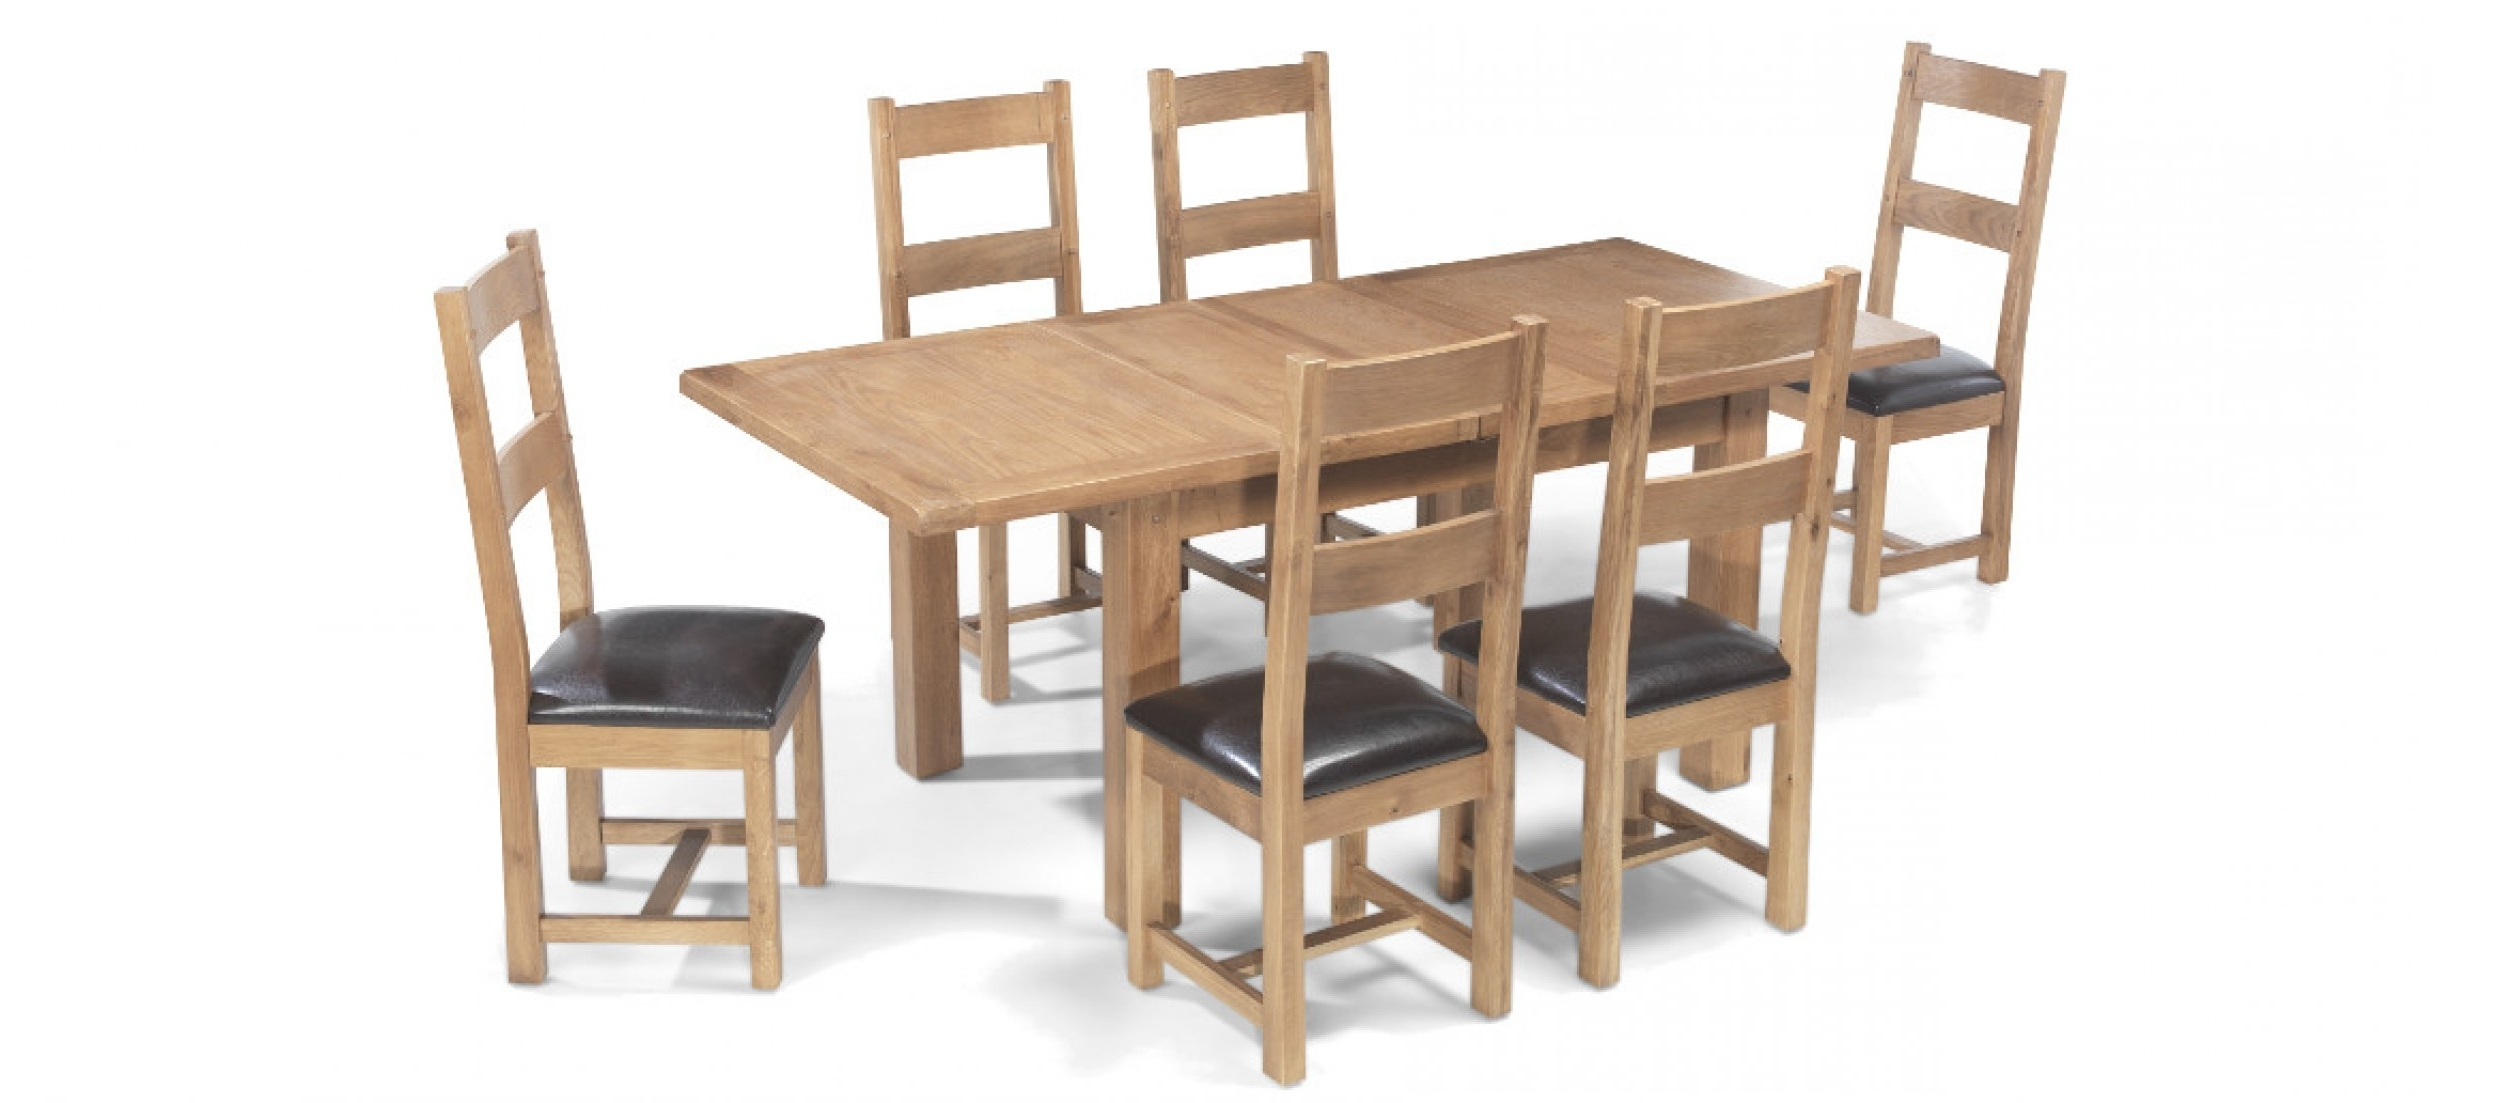 Quercus Throughout Extending Dining Tables And 8 Chairs (View 6 of 25)